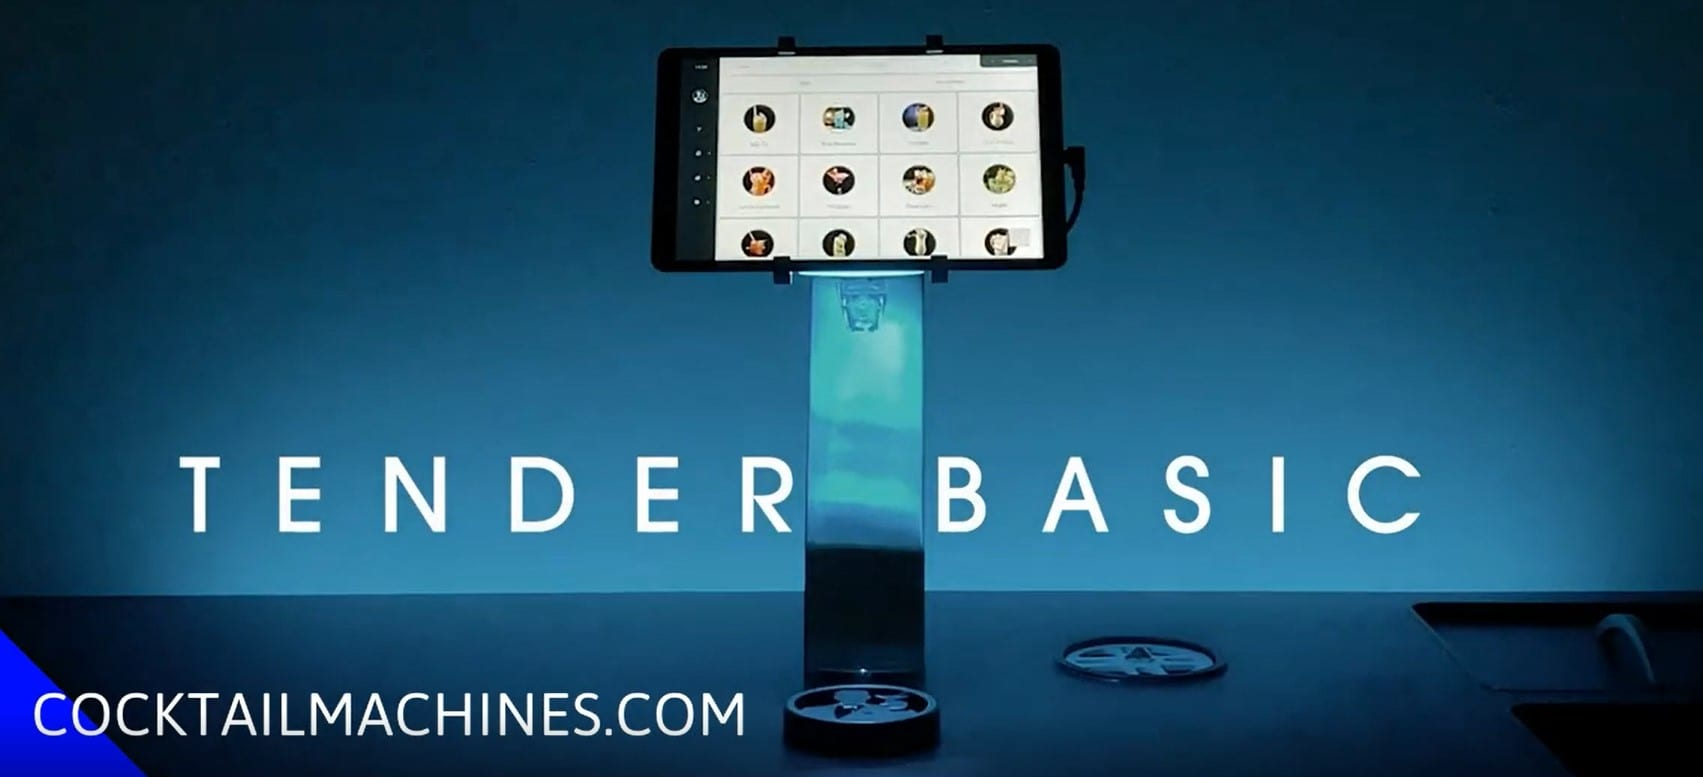 Ternderone Basis Cocktailmachine